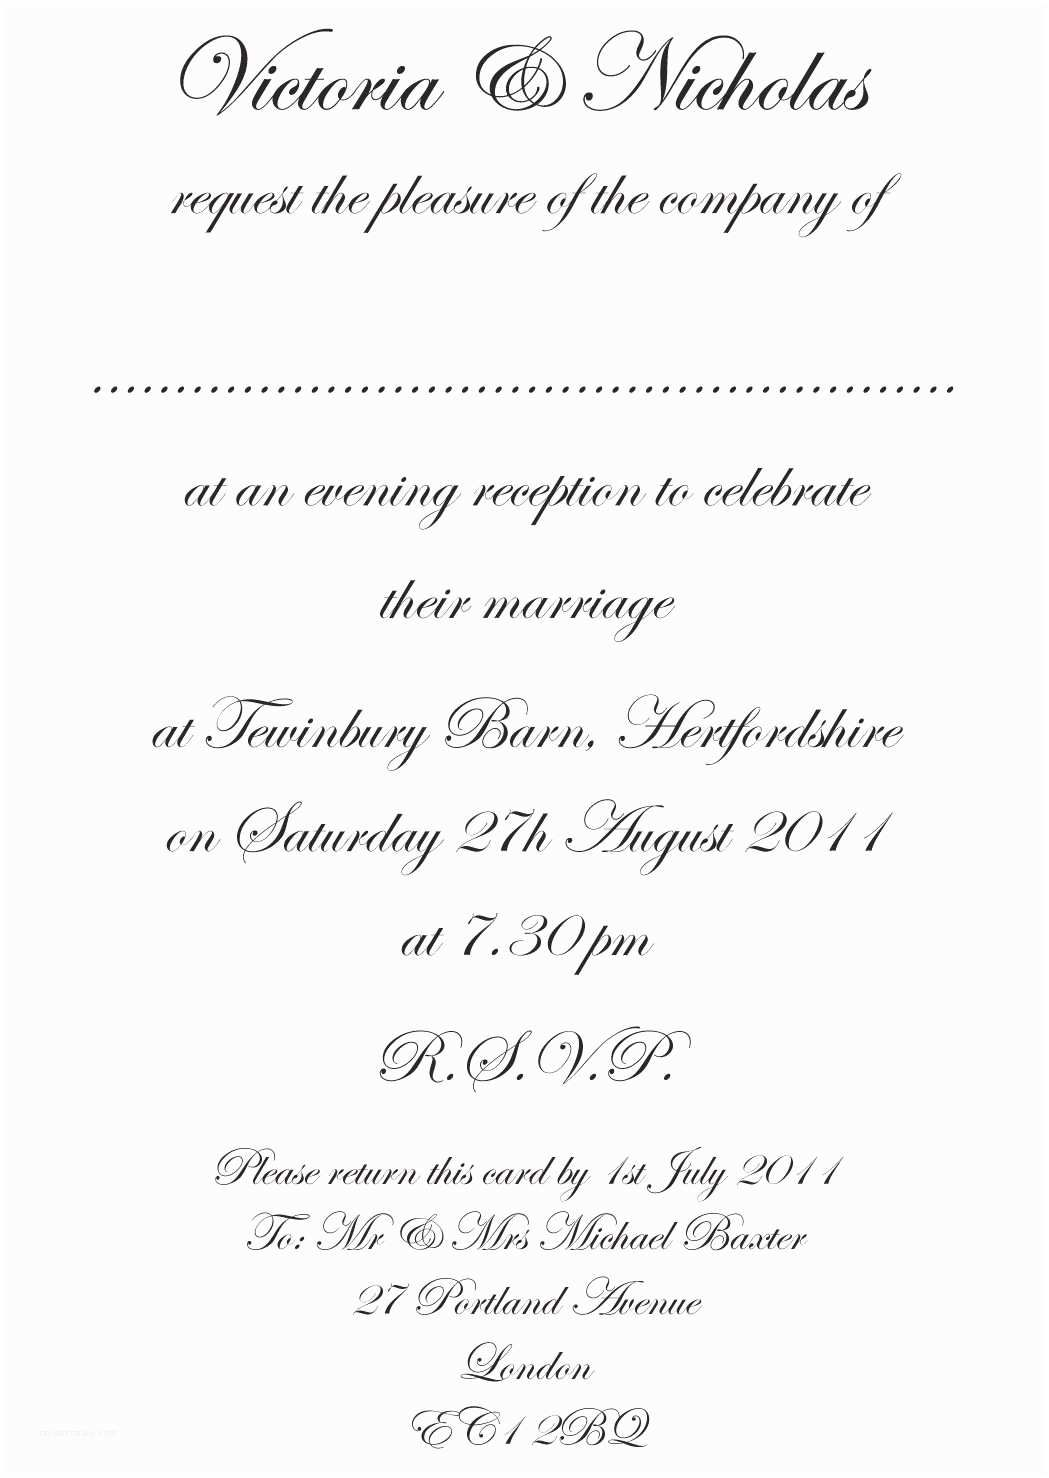 010 Astounding Formal Wedding Invitation Template Highest Quality  Templates Email Format Wording FreeFull